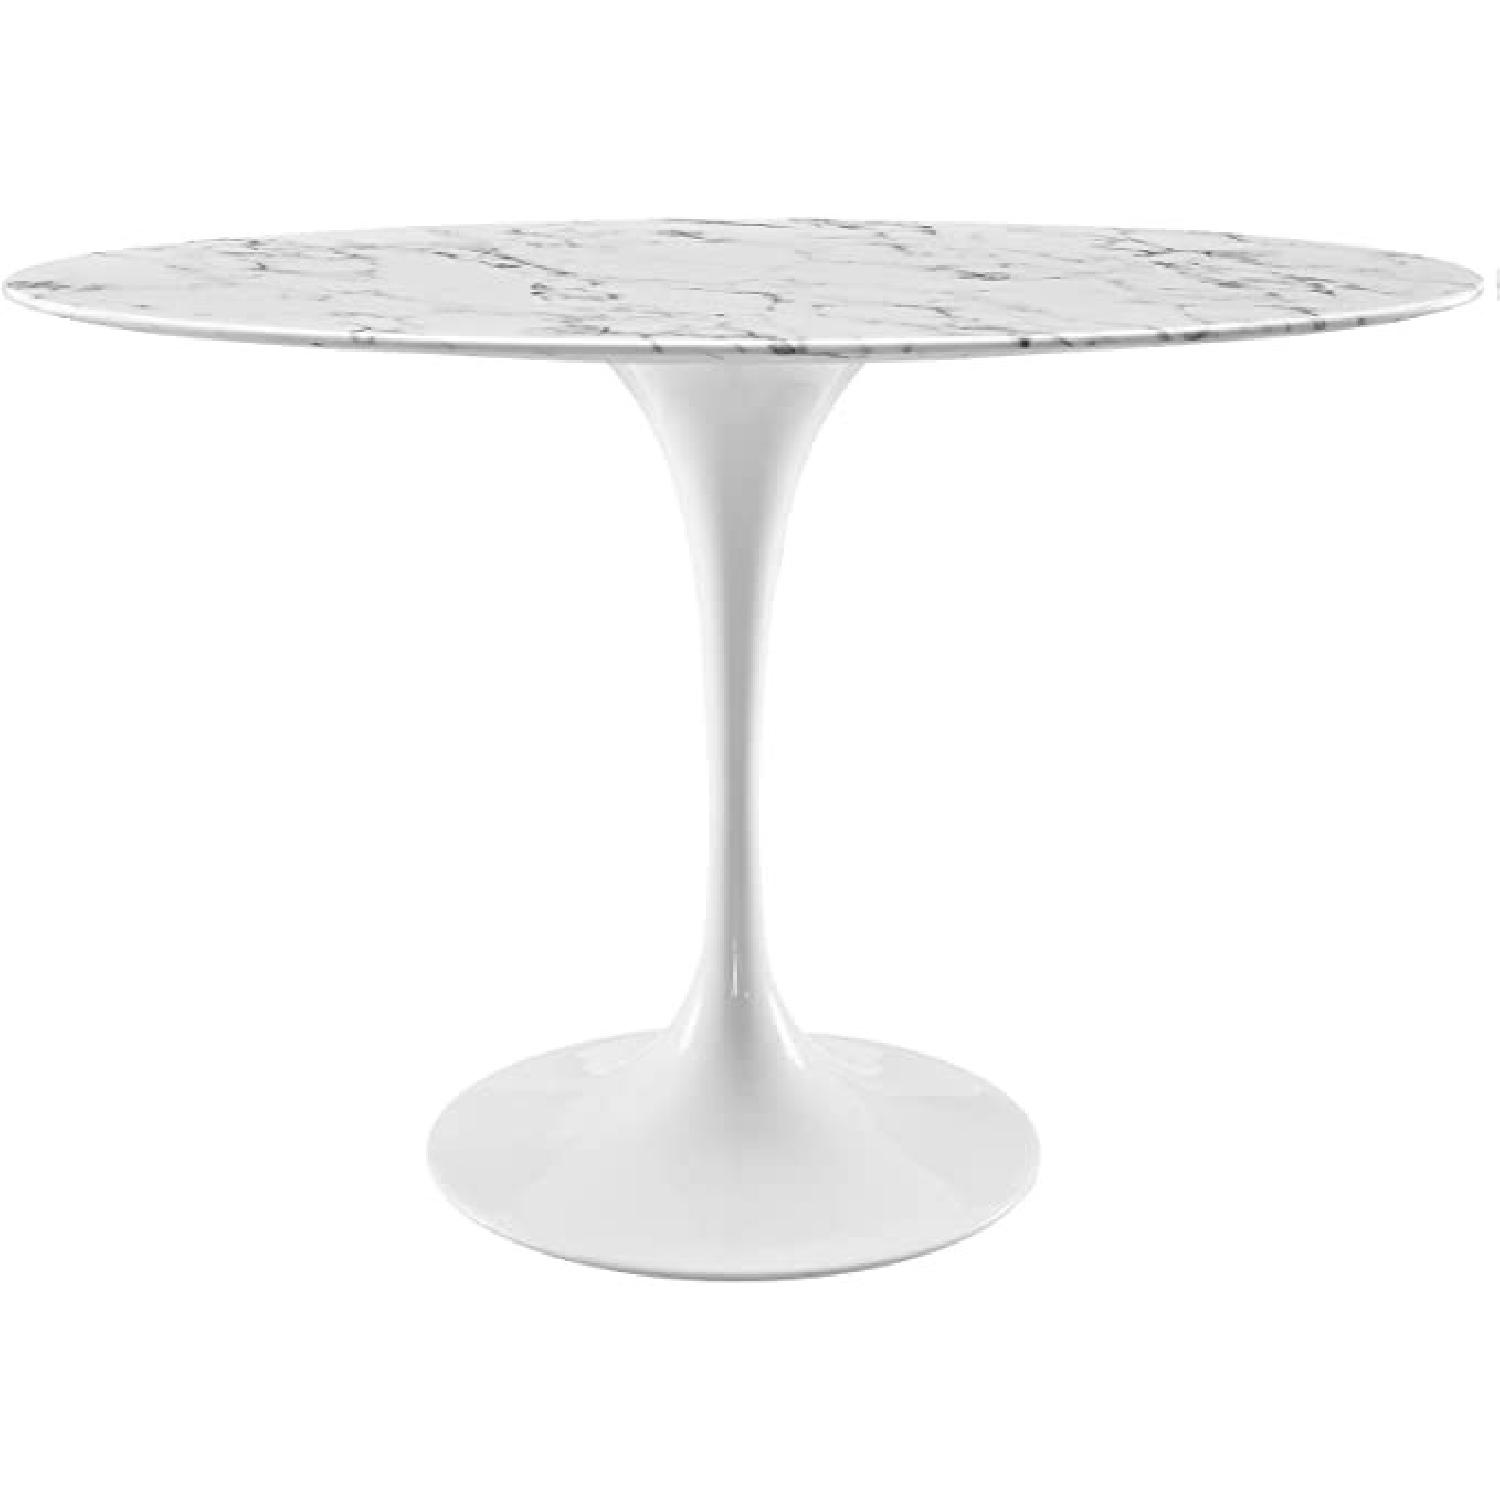 """Modway 48"""" Oval Tulip Table - image-6"""